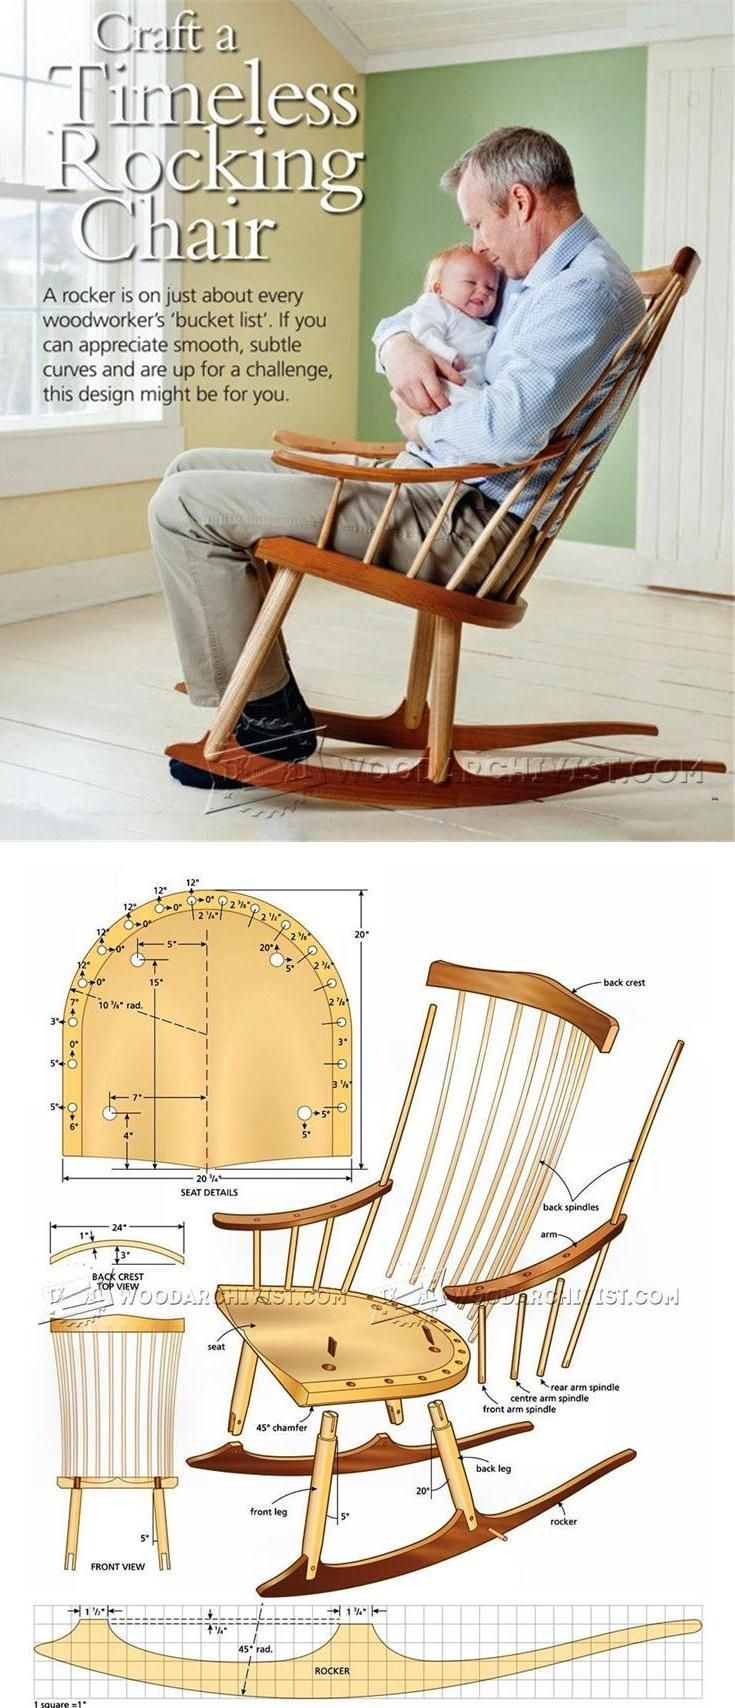 Rocking Chair Plans - Furniture Plans and Projects | WoodArchivist.com